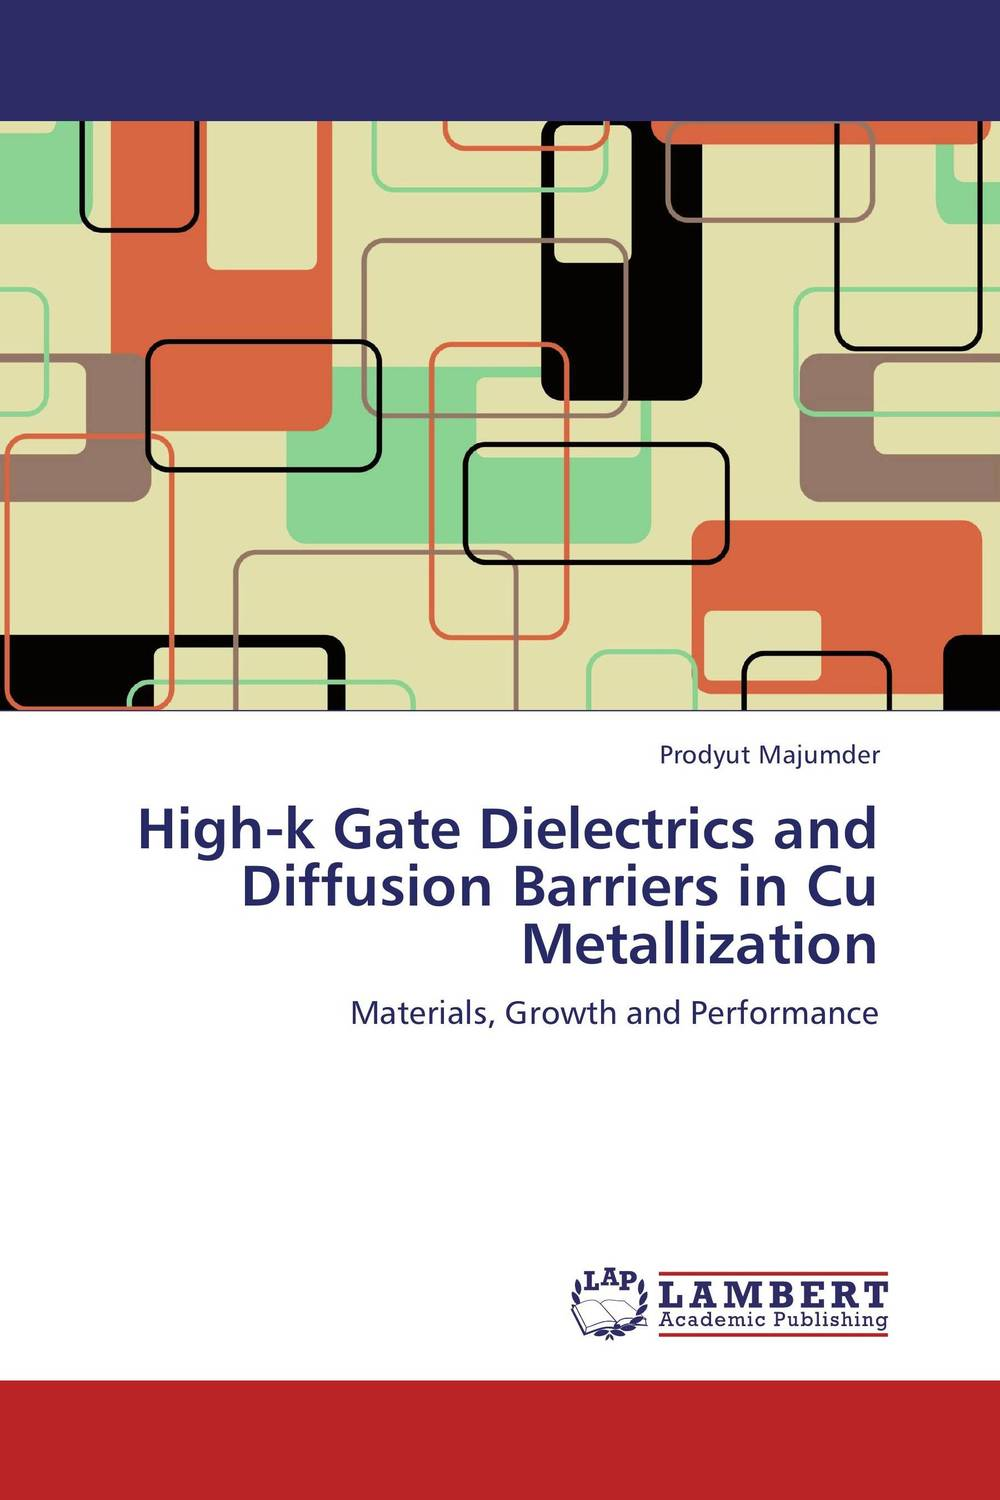 High-k Gate Dielectrics and Diffusion Barriers in Cu Metallization juan martinez vega dielectric materials for electrical engineering